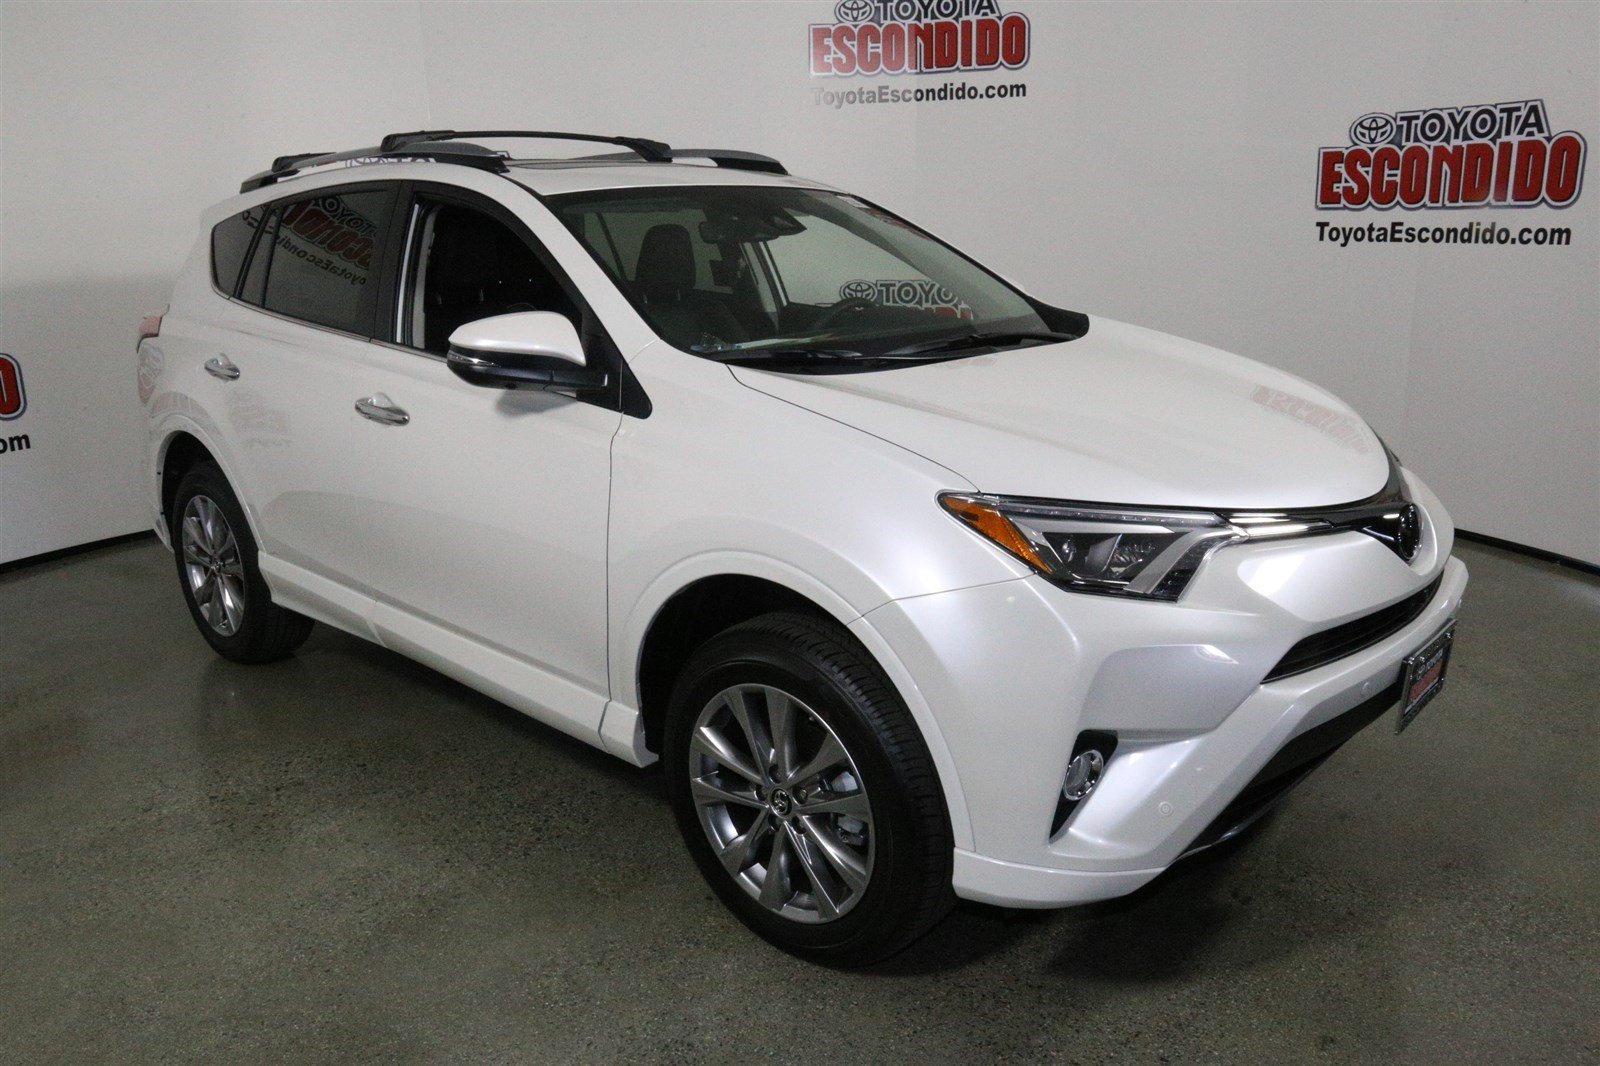 new 2017 toyota rav4 platinum sport utility in escondido hw319234 toyota of escondido. Black Bedroom Furniture Sets. Home Design Ideas